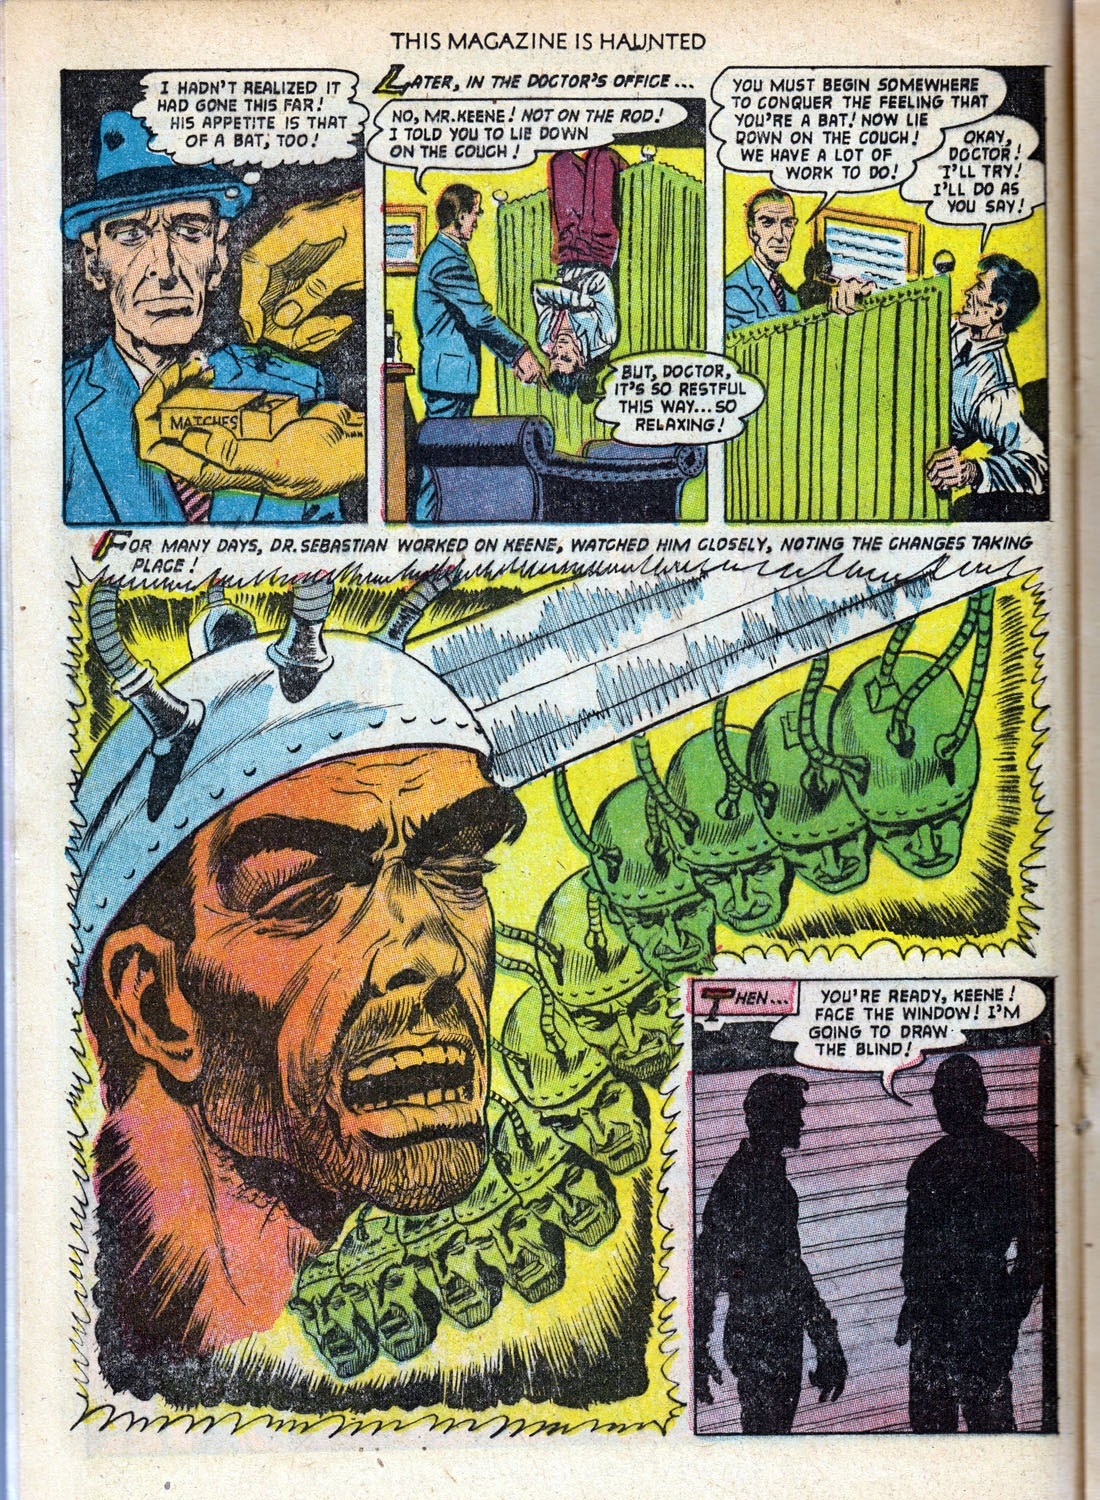 Read online This Magazine Is Haunted comic -  Issue #11 - 16